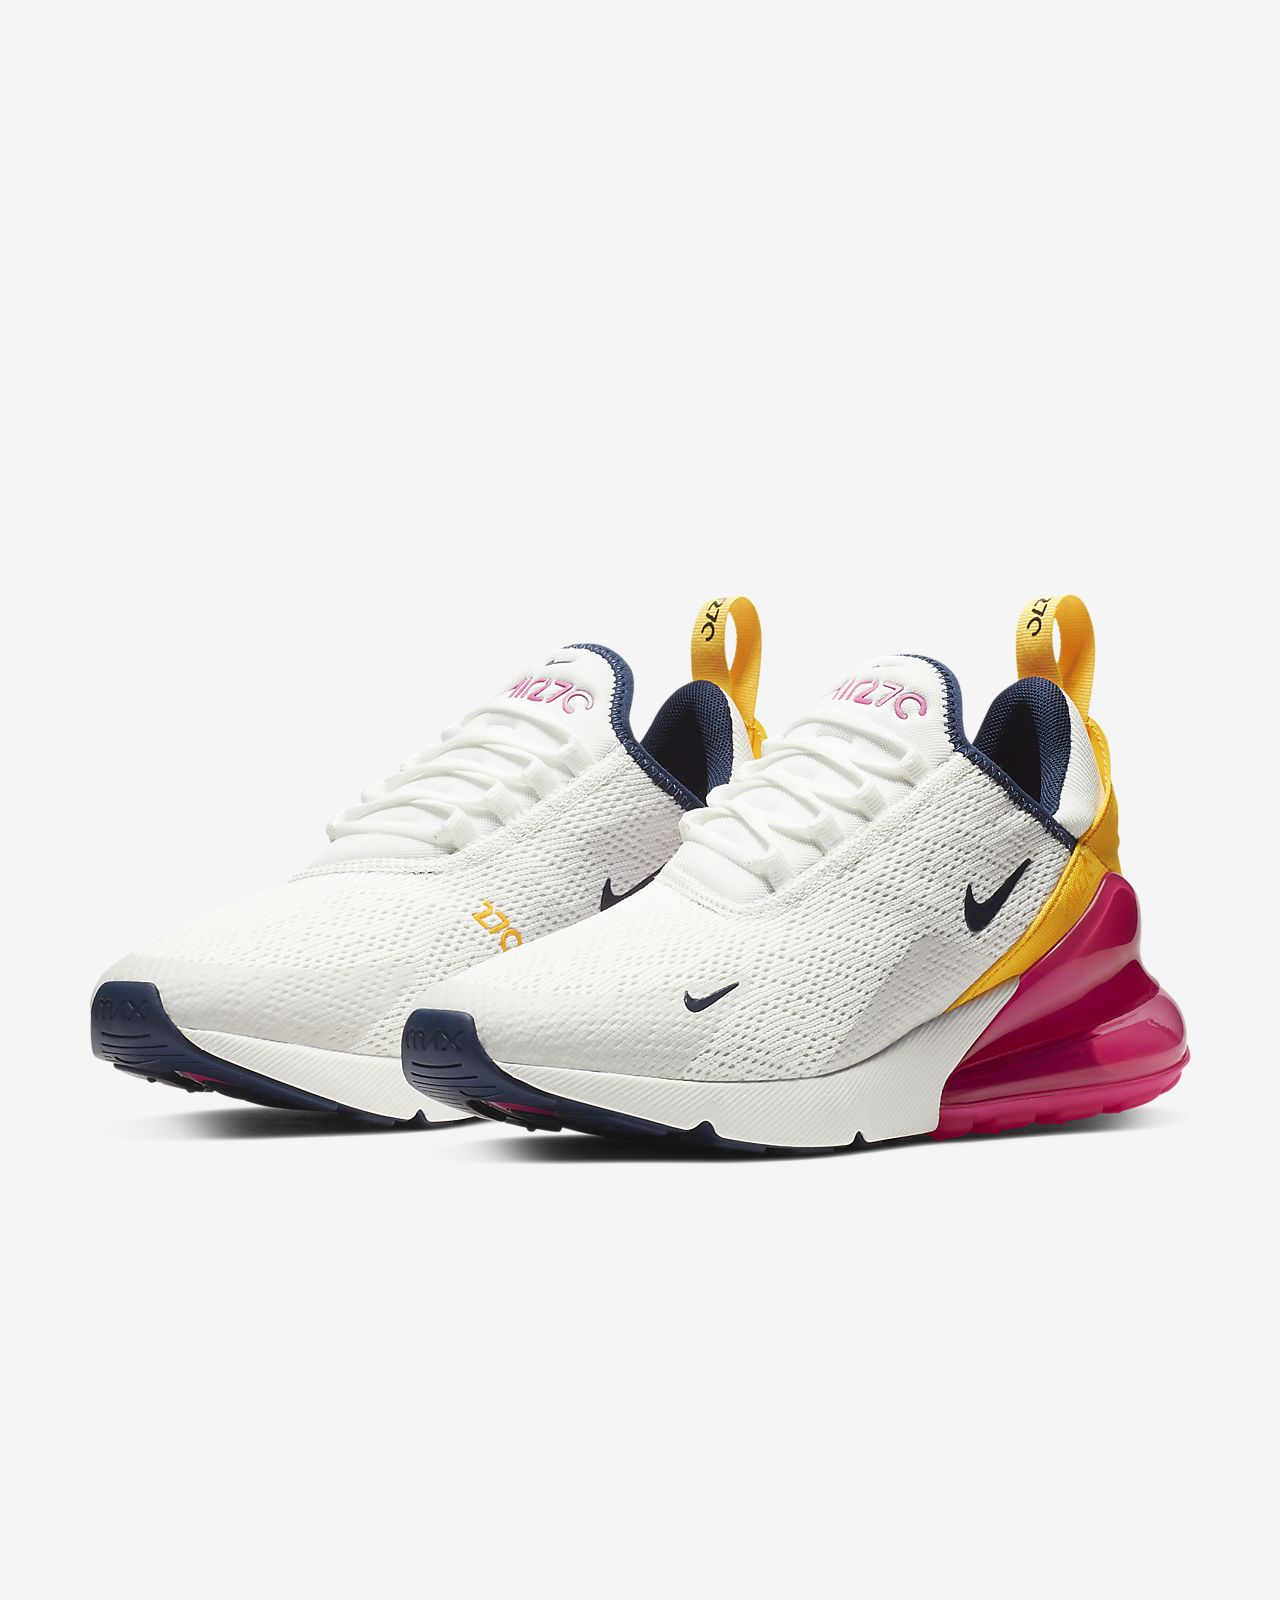 new products 7114a dc59d ... Nike Air Max 270 Premium Women s Shoe